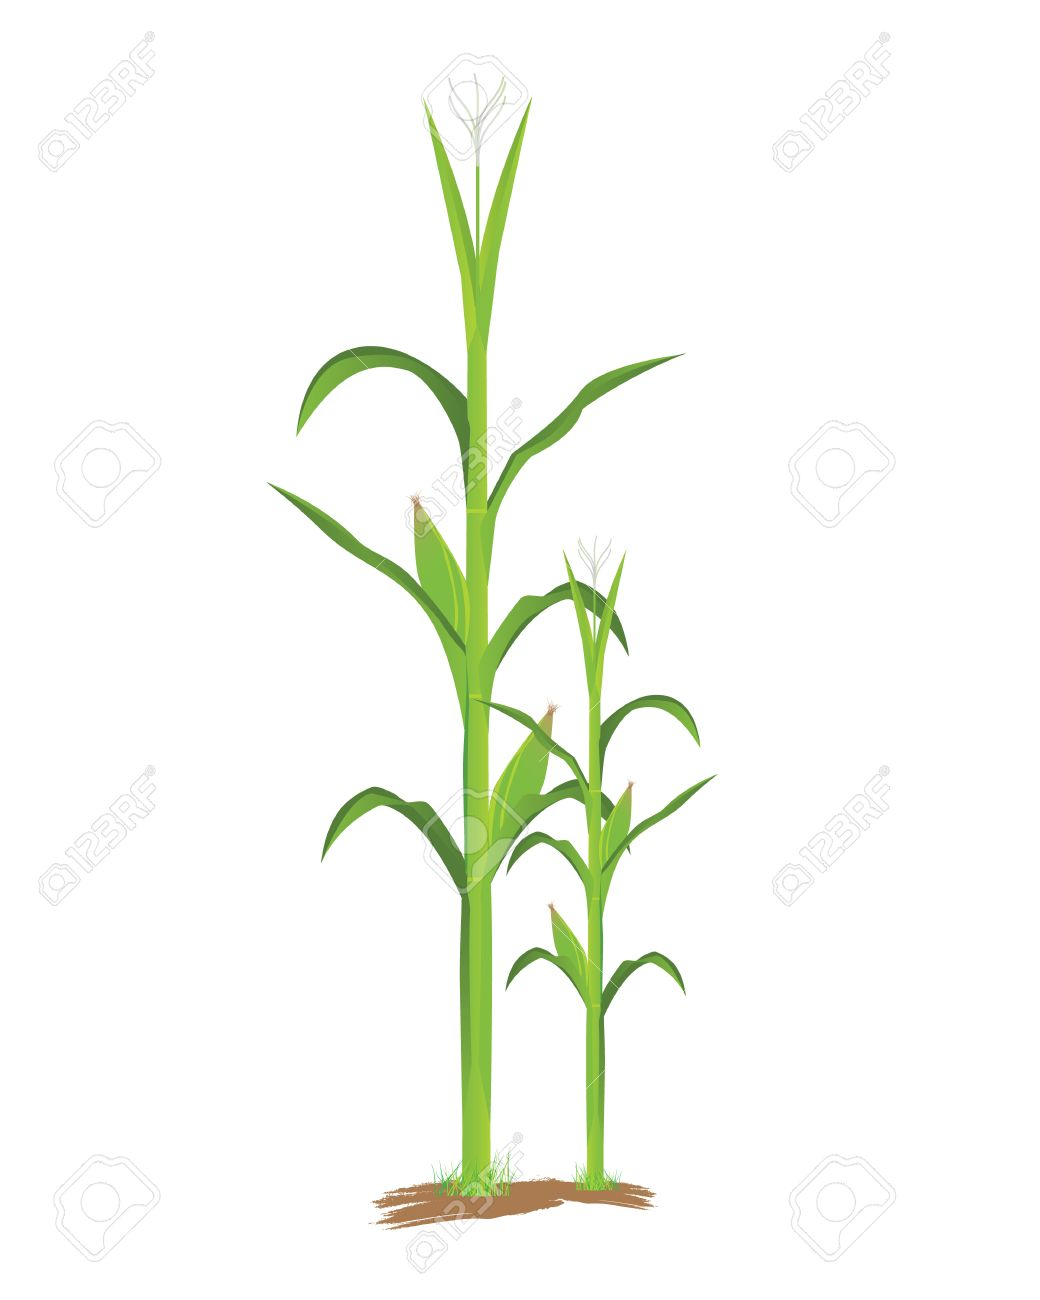 corn plant vector design royalty free cliparts vectors and stock rh 123rf com plant vector stock request plant vector protection